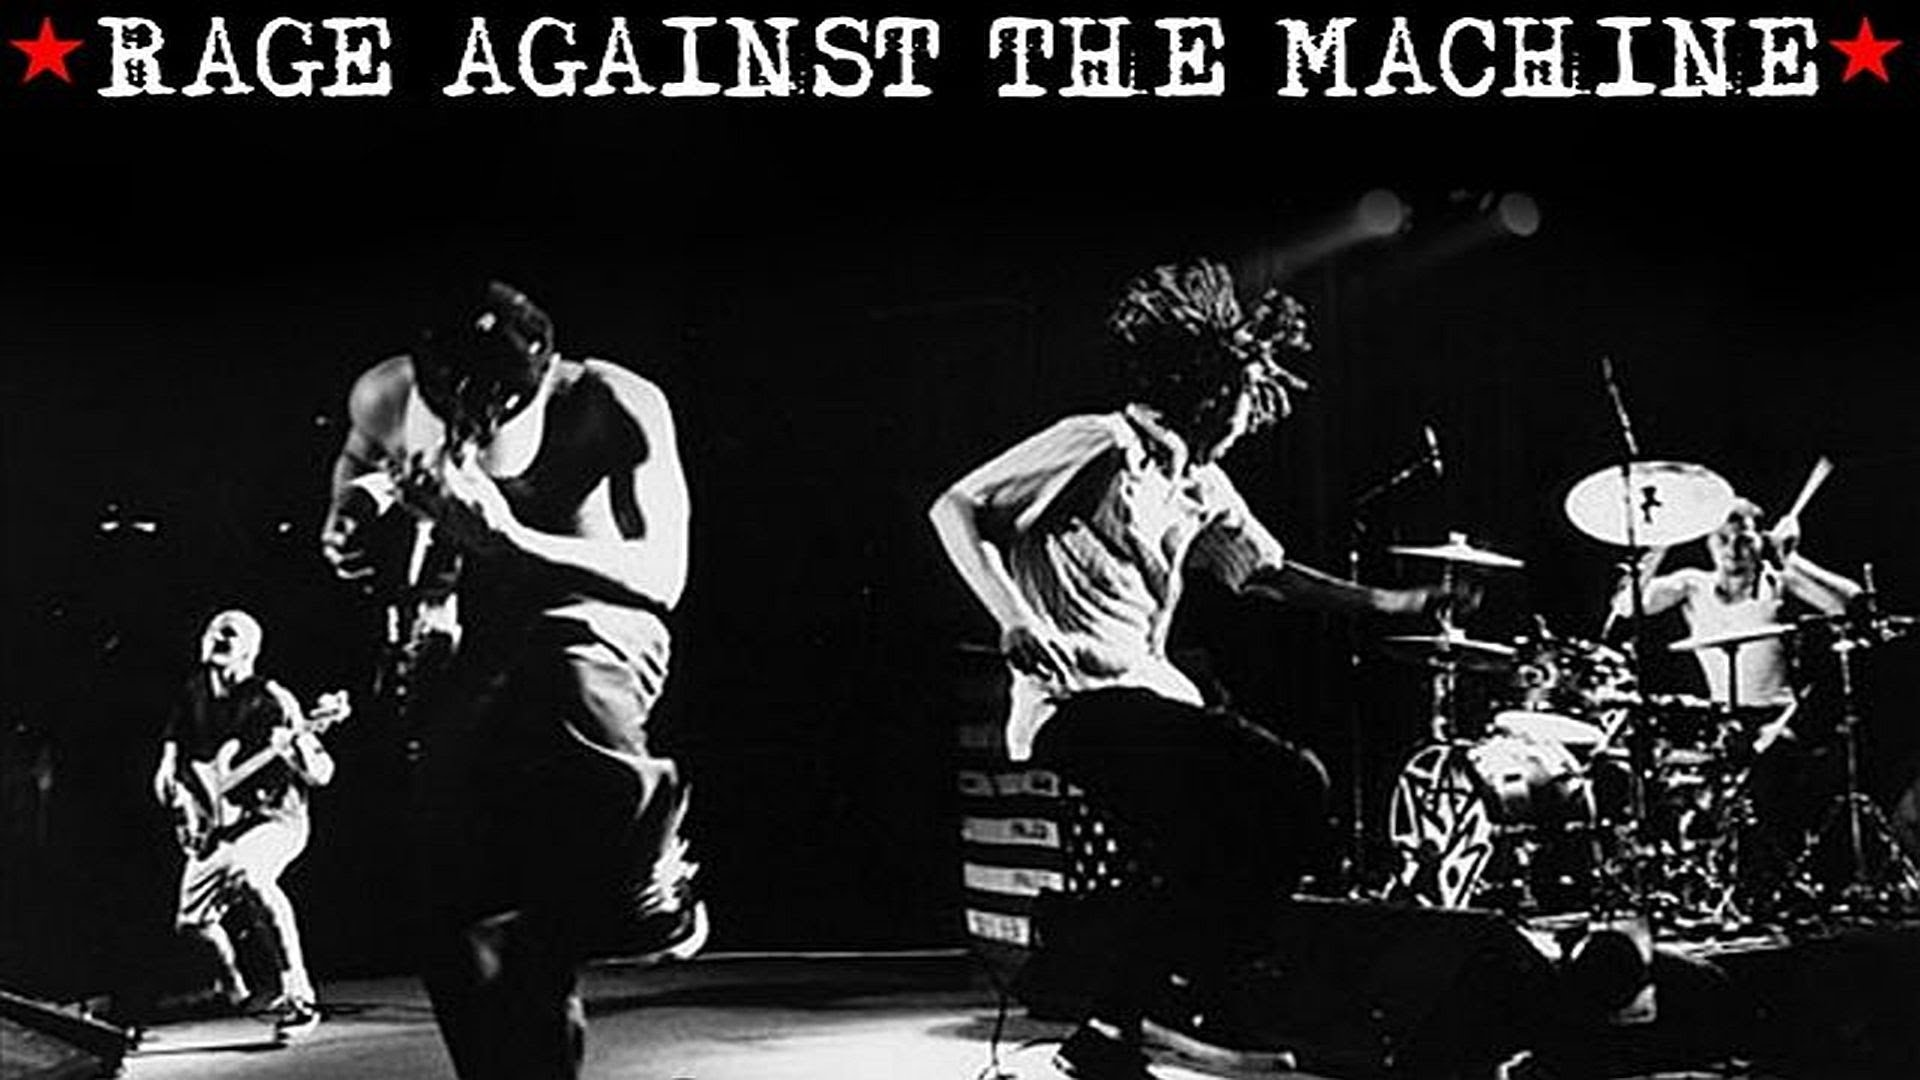 Free Download Image Gallery Ratm 1920x1080 For Your Desktop